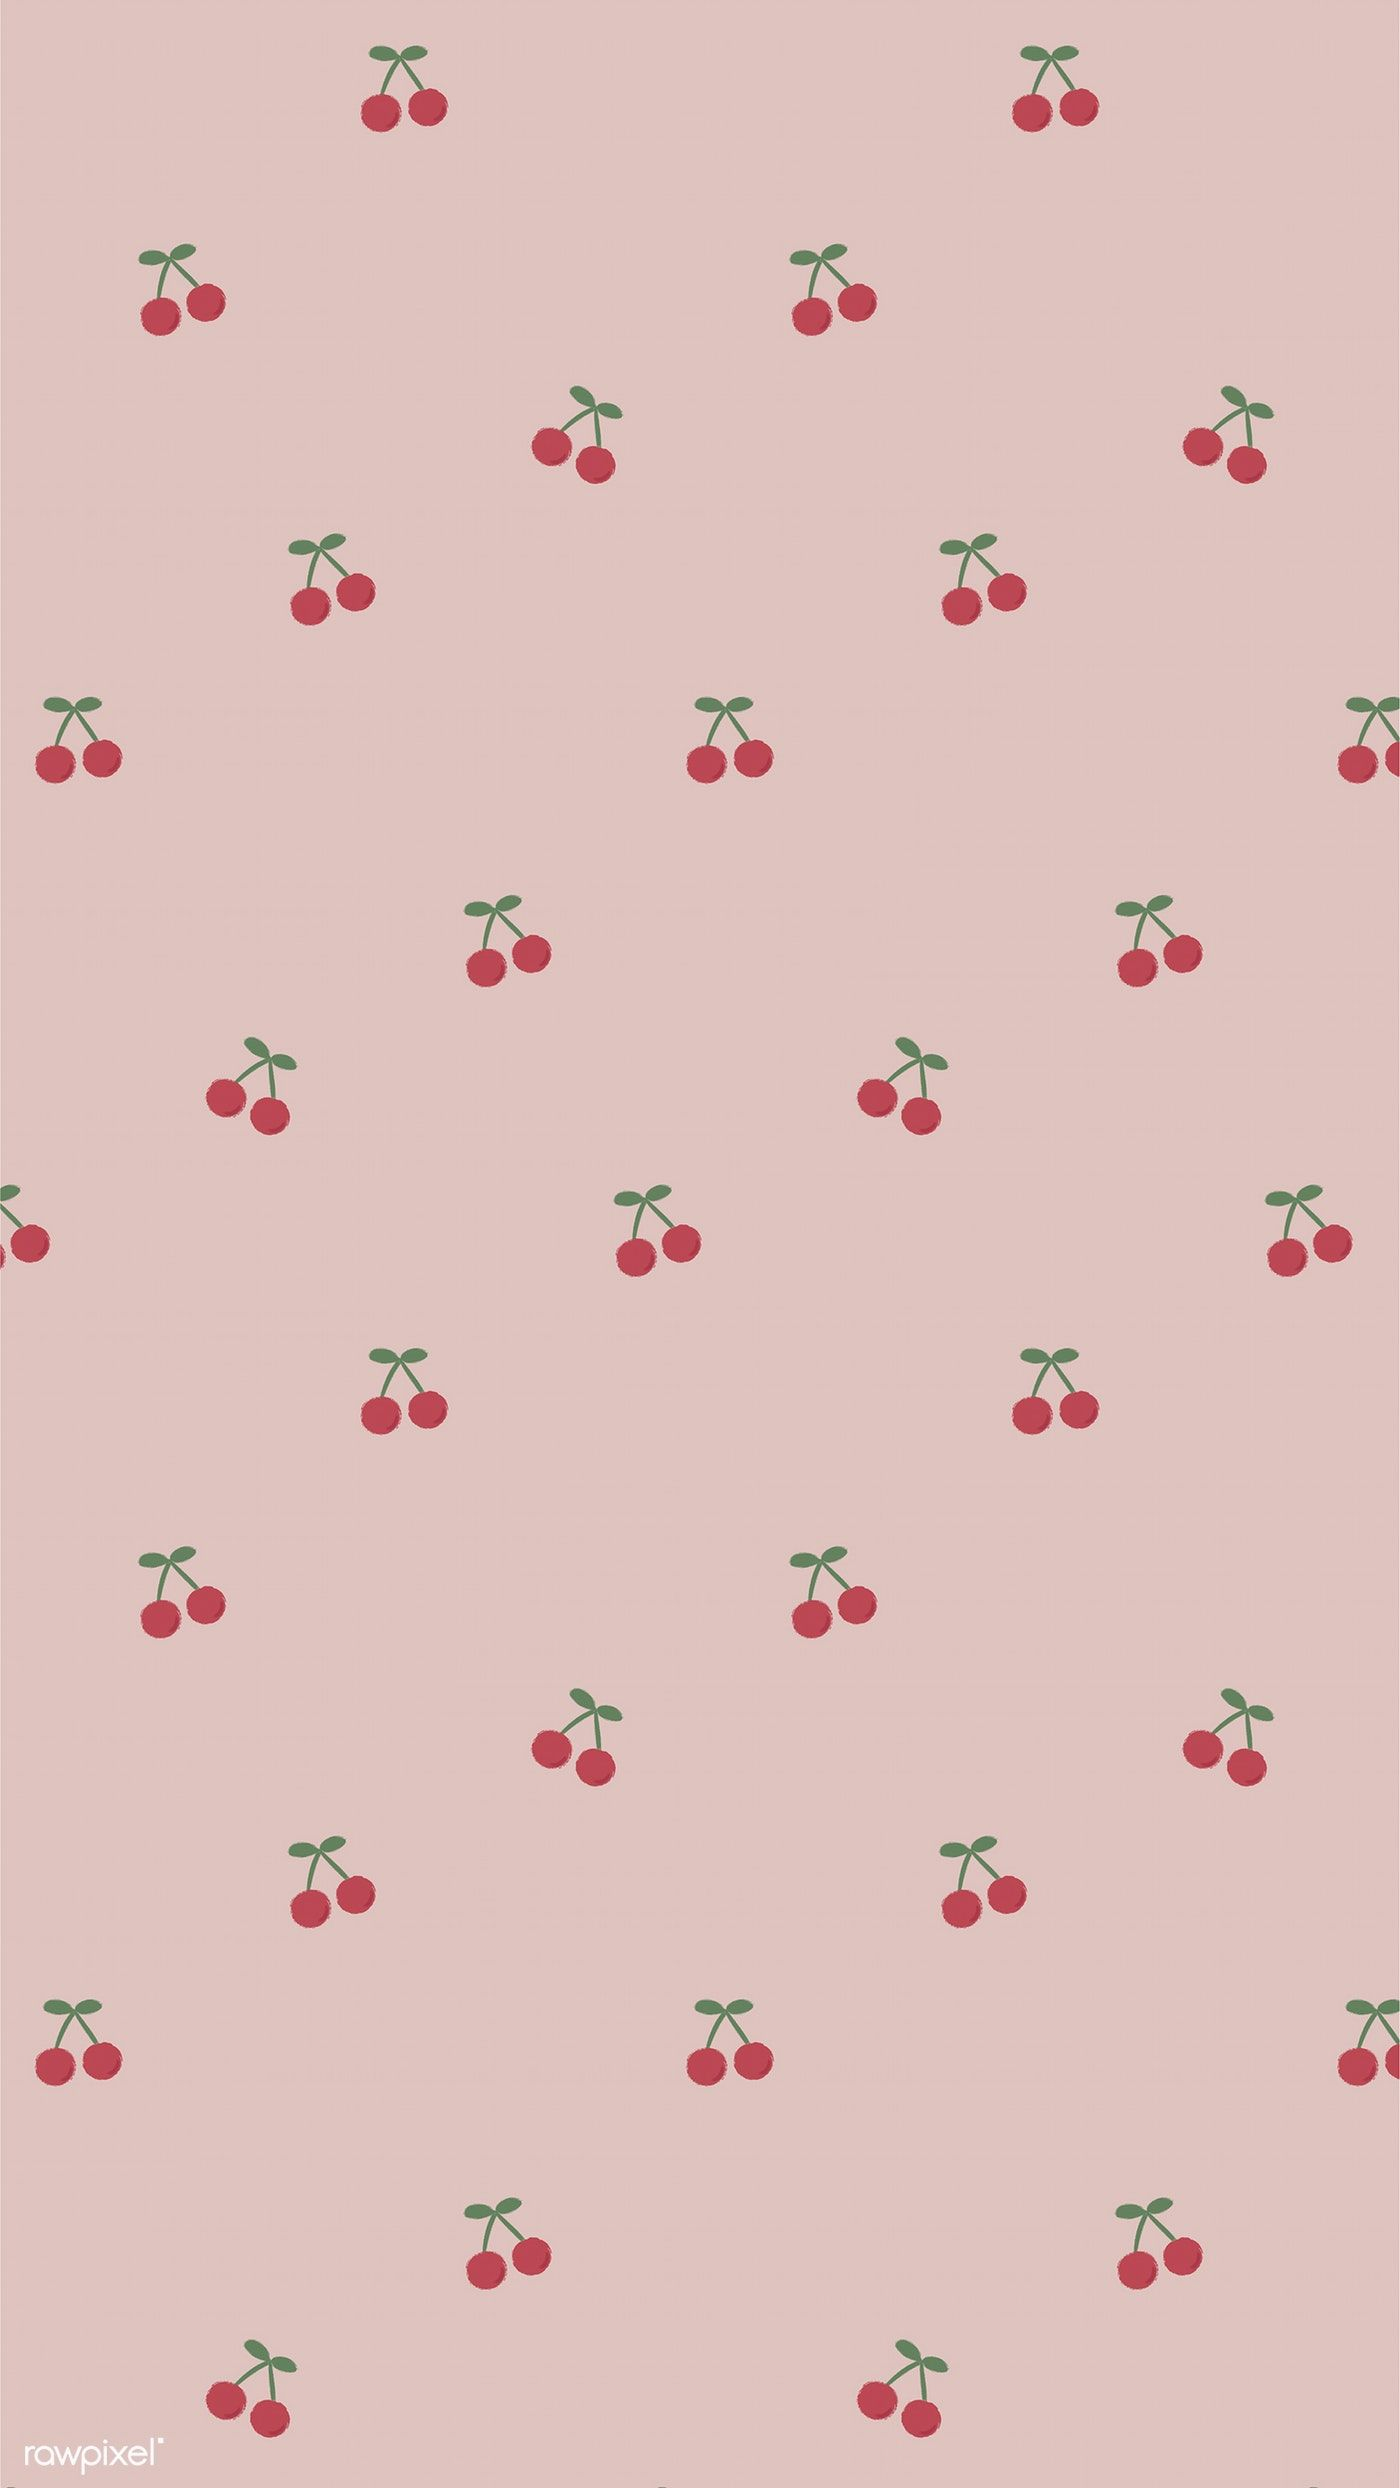 Download Premium Illustration Of Red Hand Drawn Cherry Pattern On Pink Soft Wallpaper Wallpaper Iphone Cute Pastel Wallpaper